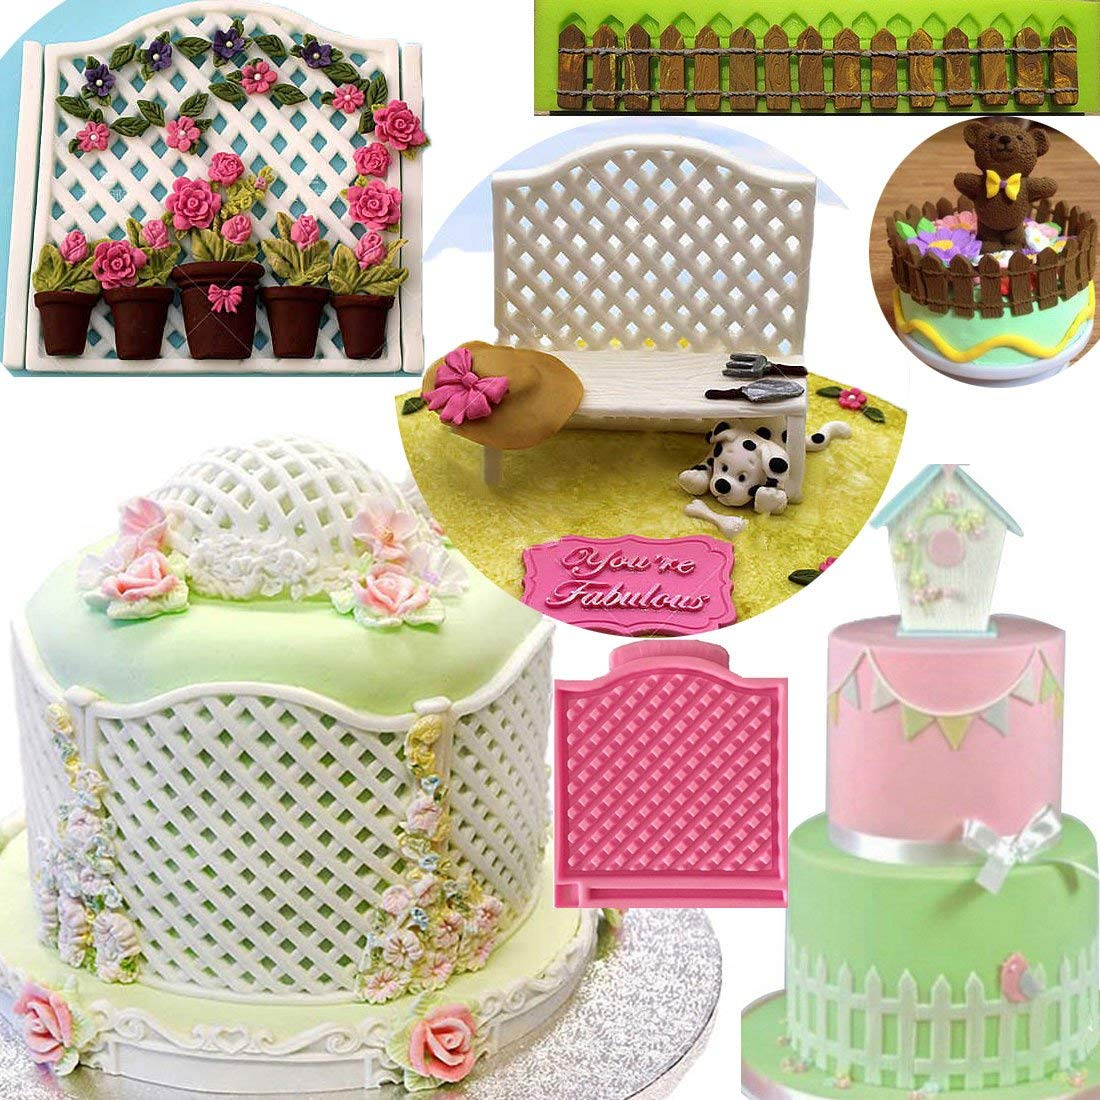 Anyana long Fence Posts mold Garden Trellis Baking Molds forest party animal Silicone Fondant molds Cake Decorating Tools Gumpaste cupcake decorations resin Clay Chocolate Candy Moulds Non stick